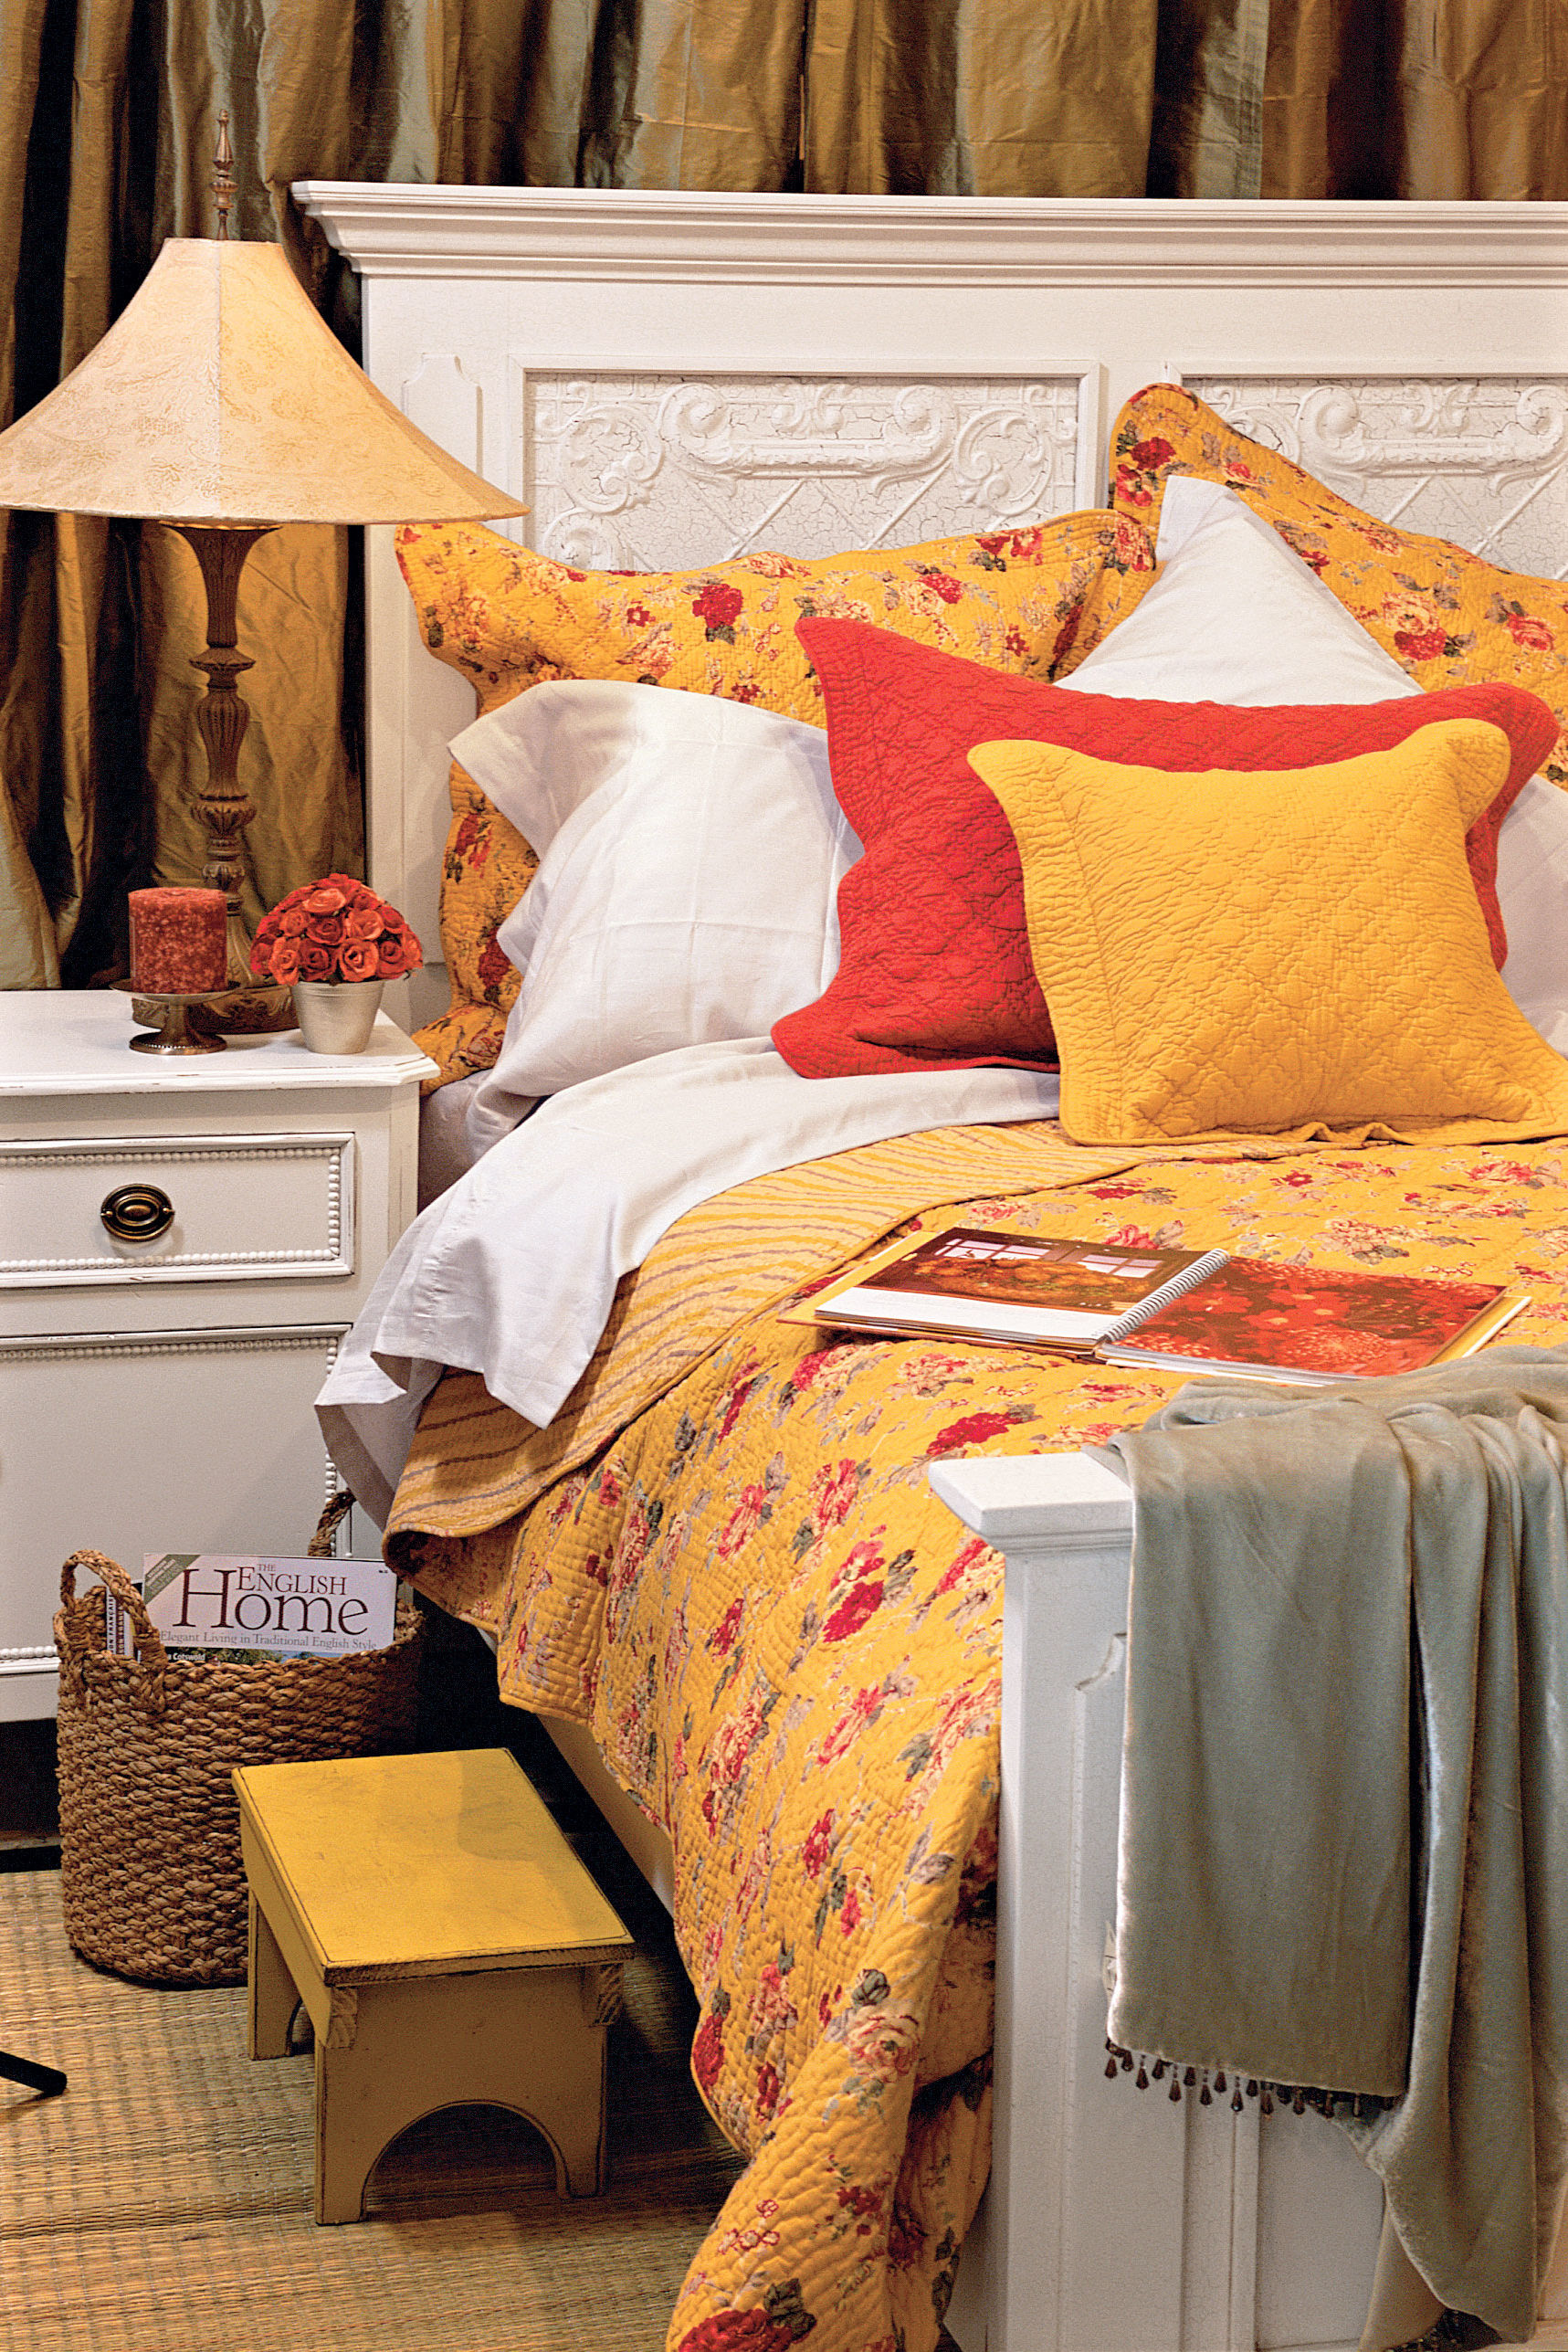 Get a Good Night's Rest With the Right Bedding